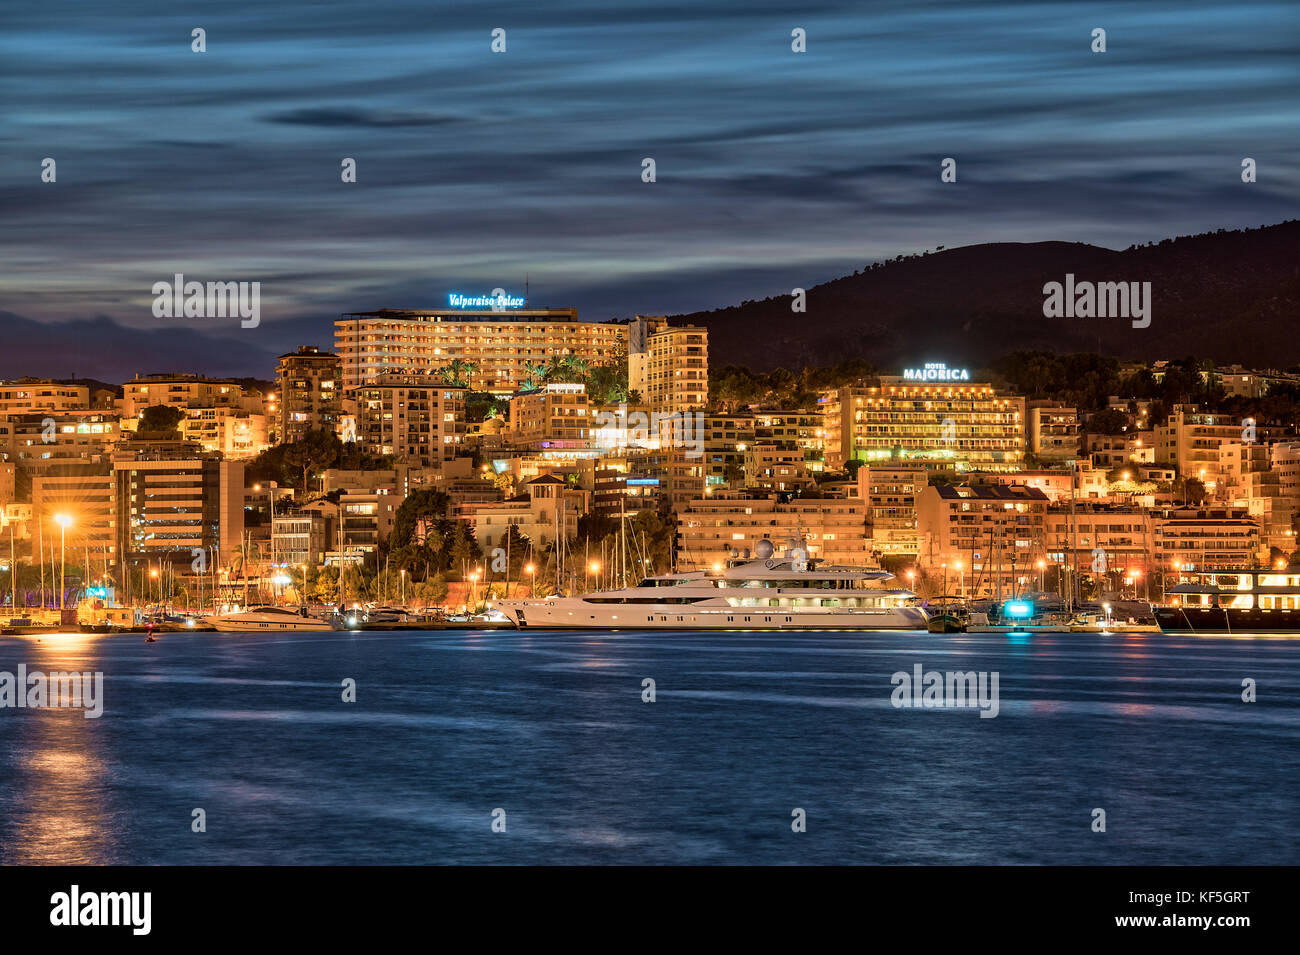 Palma de Mallorca, Balearic Islands,  Spain. - Stock Image